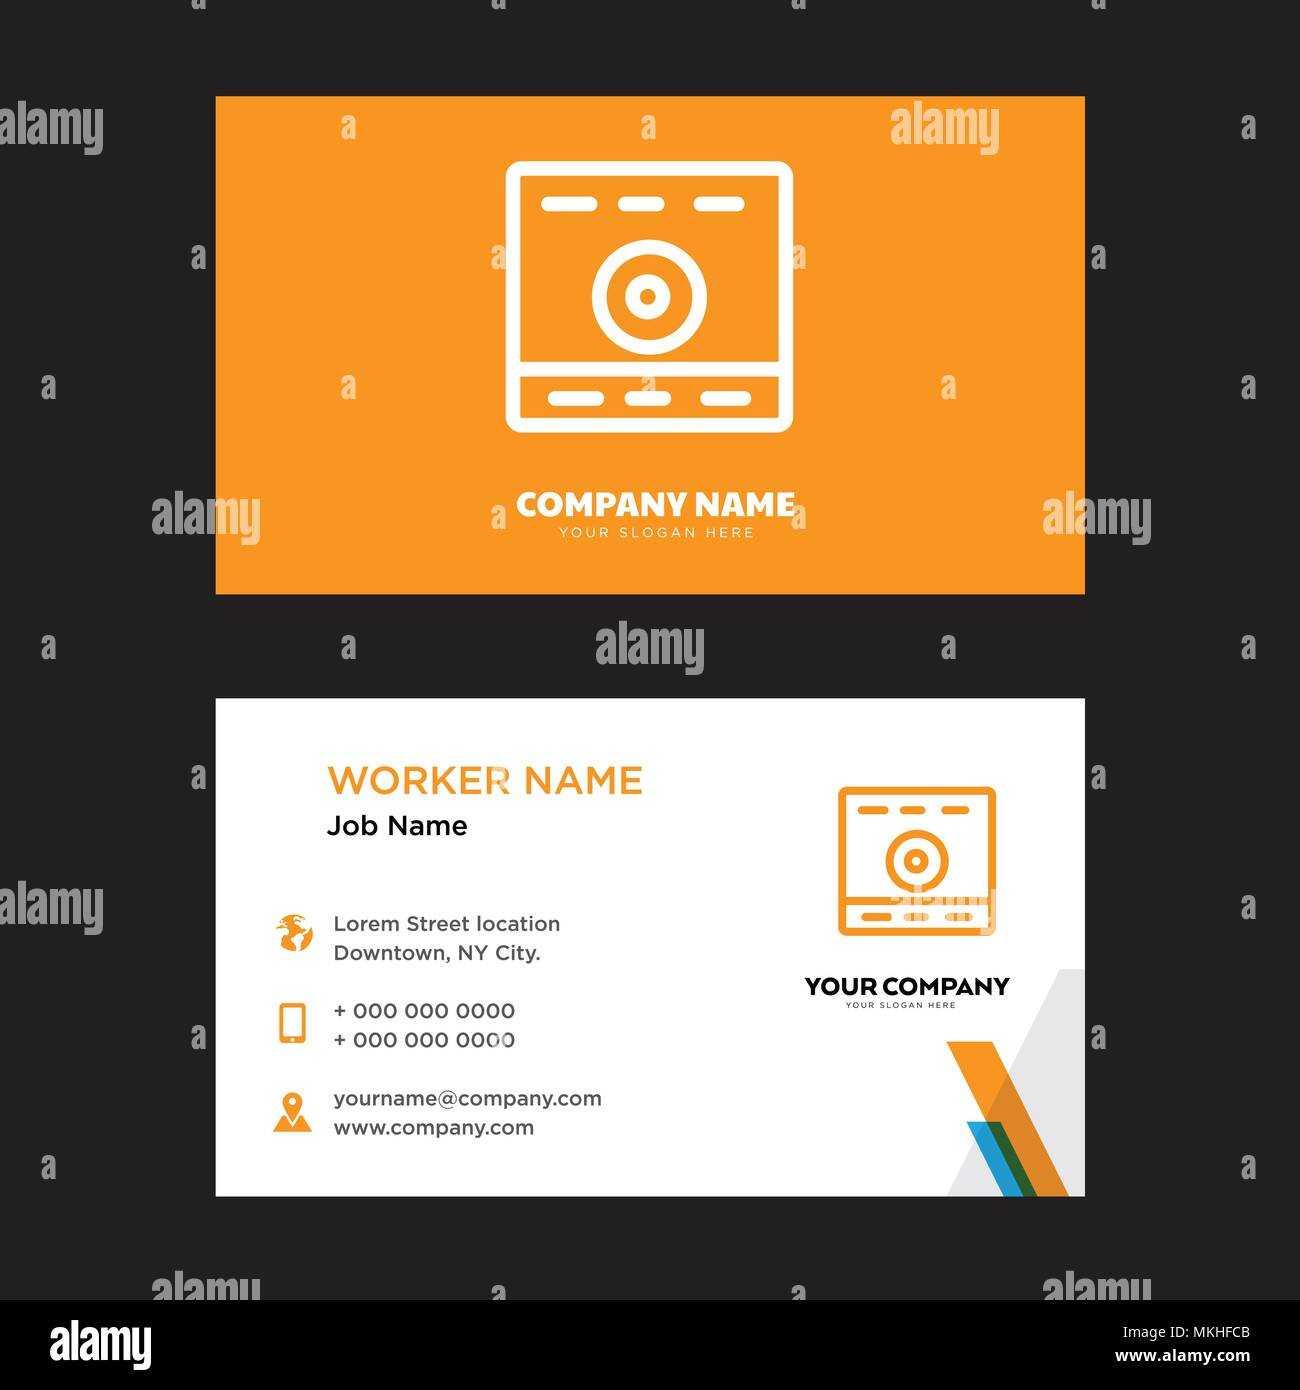 Computer business card design template visiting for your company computer business card design template visiting for your company modern horizontal identity card vector accmission Gallery